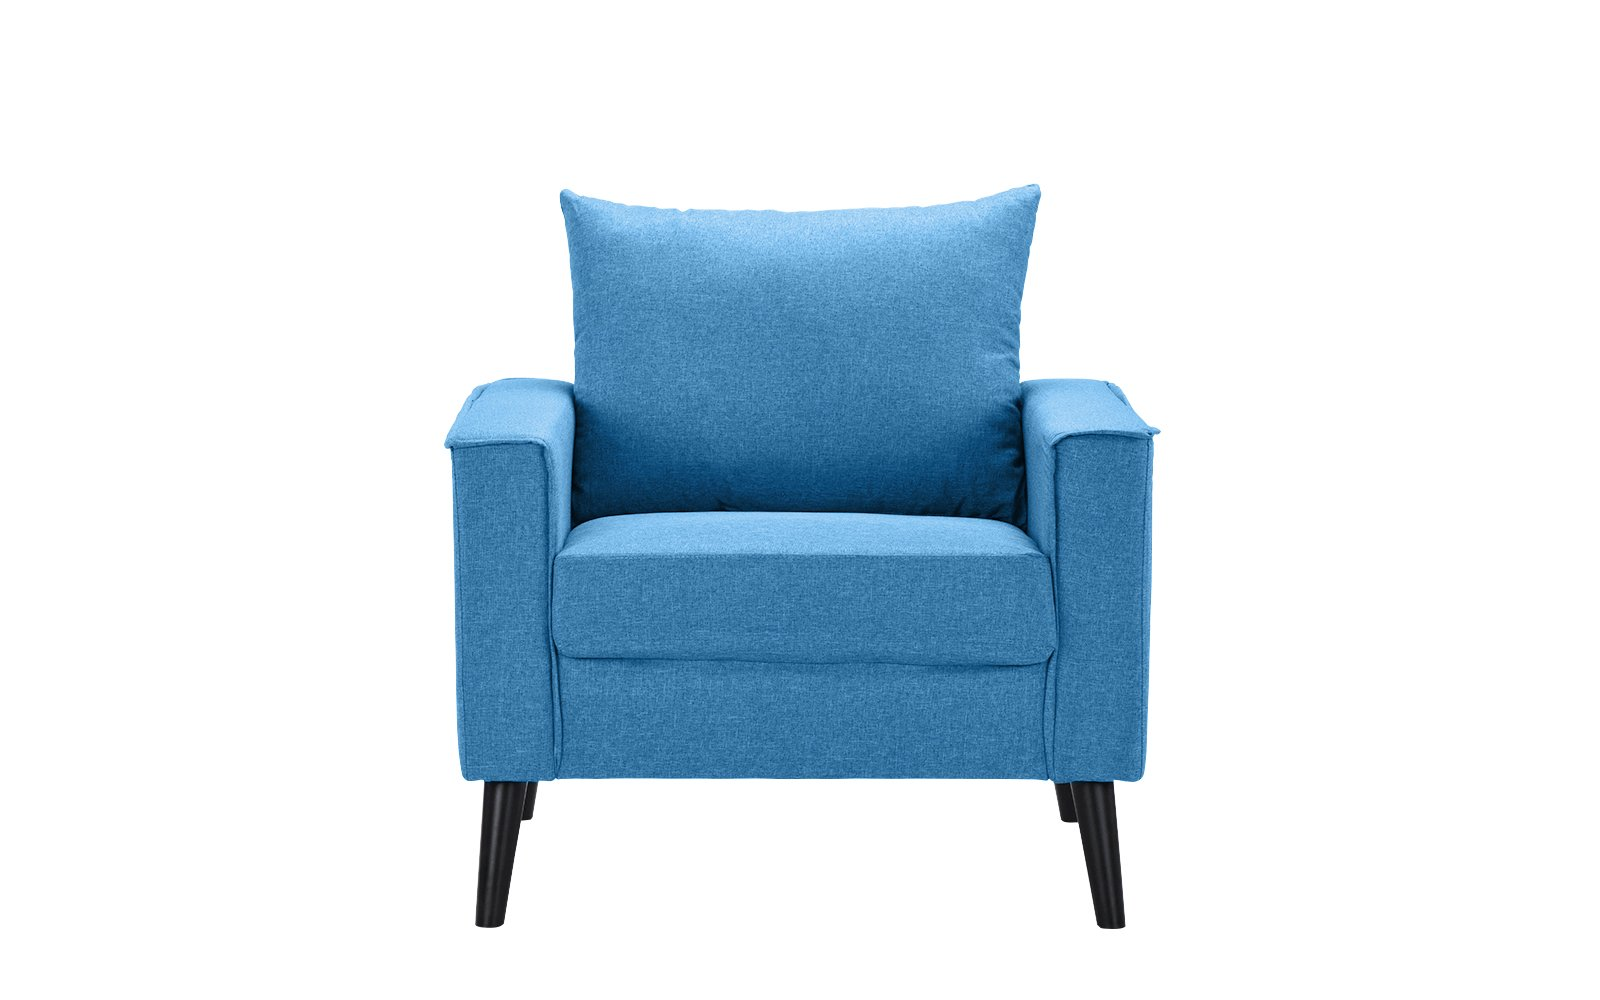 Mid-Century Modern Linen Fabric Armchair Living Room Accent Chair (Sky Blue) - Mid century modern linen fabric wide armchair, perfect as an accent living room piece or a reading nook Features hand picked linen fabric upholstery and tall dark wooden legs with comfortable back and seat cushion Stitching around the frame is exposed giving this furniture piece a touch of modernism - living-room-furniture, living-room, accent-chairs - 619sVx8fEsL -